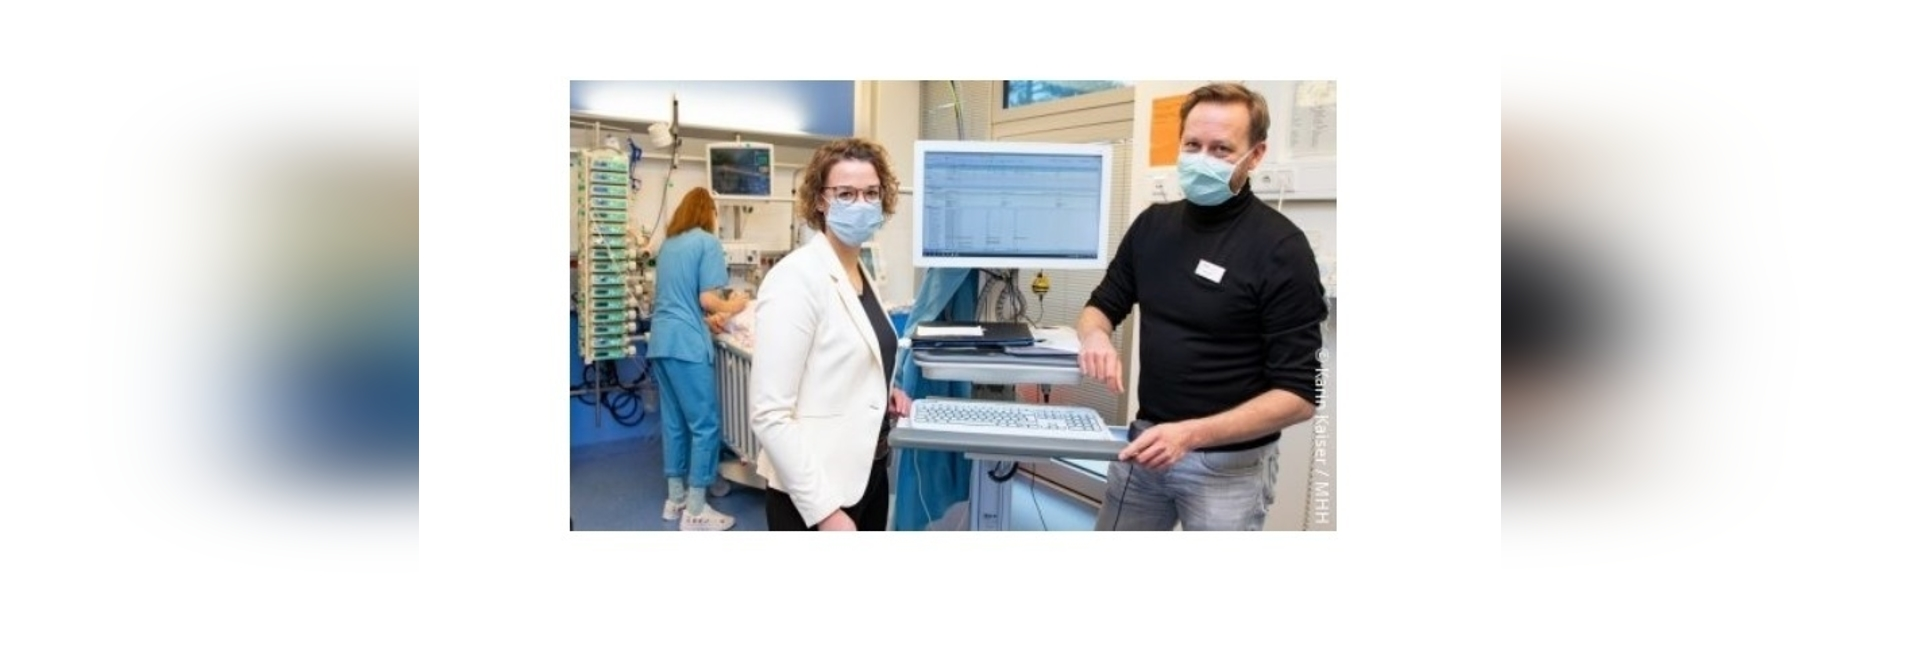 Dr Thomas Jack and Dr Antje Wulff next to a PDMS monitor in the paediatric intensive care unit.